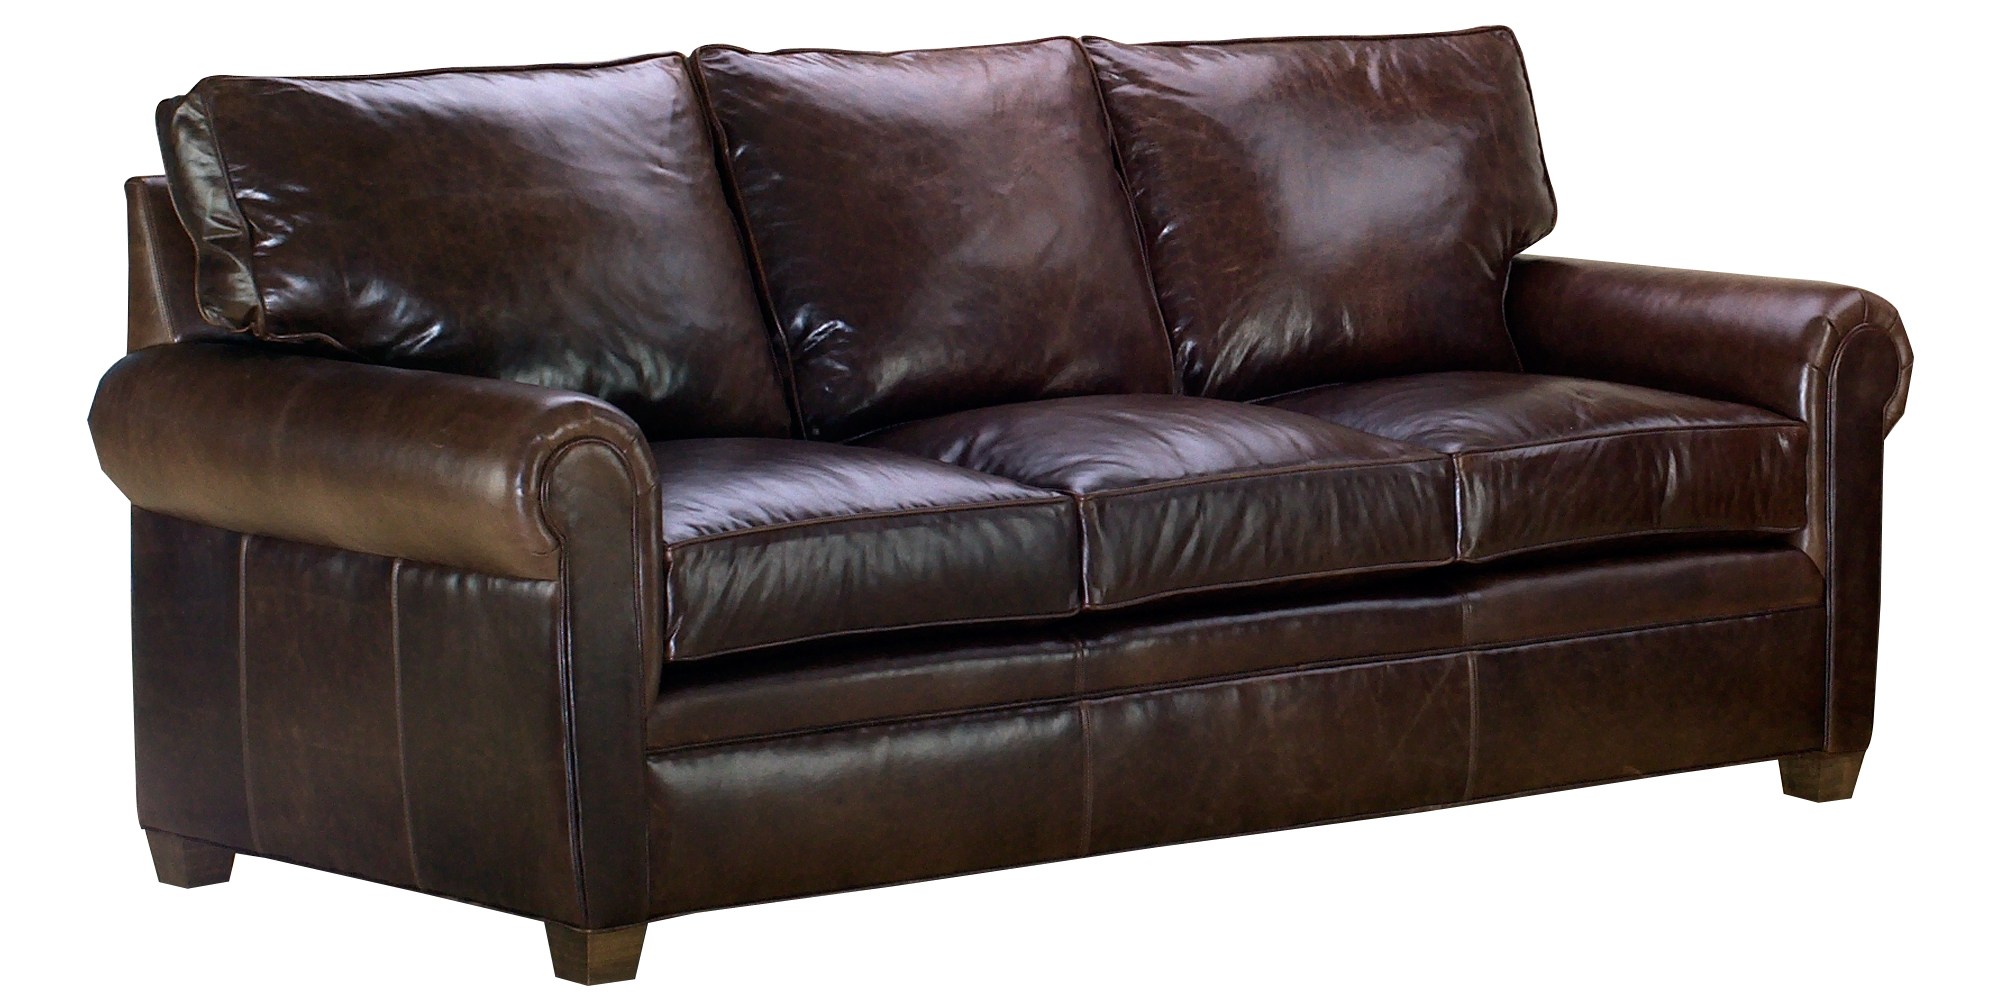 Leather Couch And Sofa Set Classic Leather Sofa Set With Traditional Rolled Arms